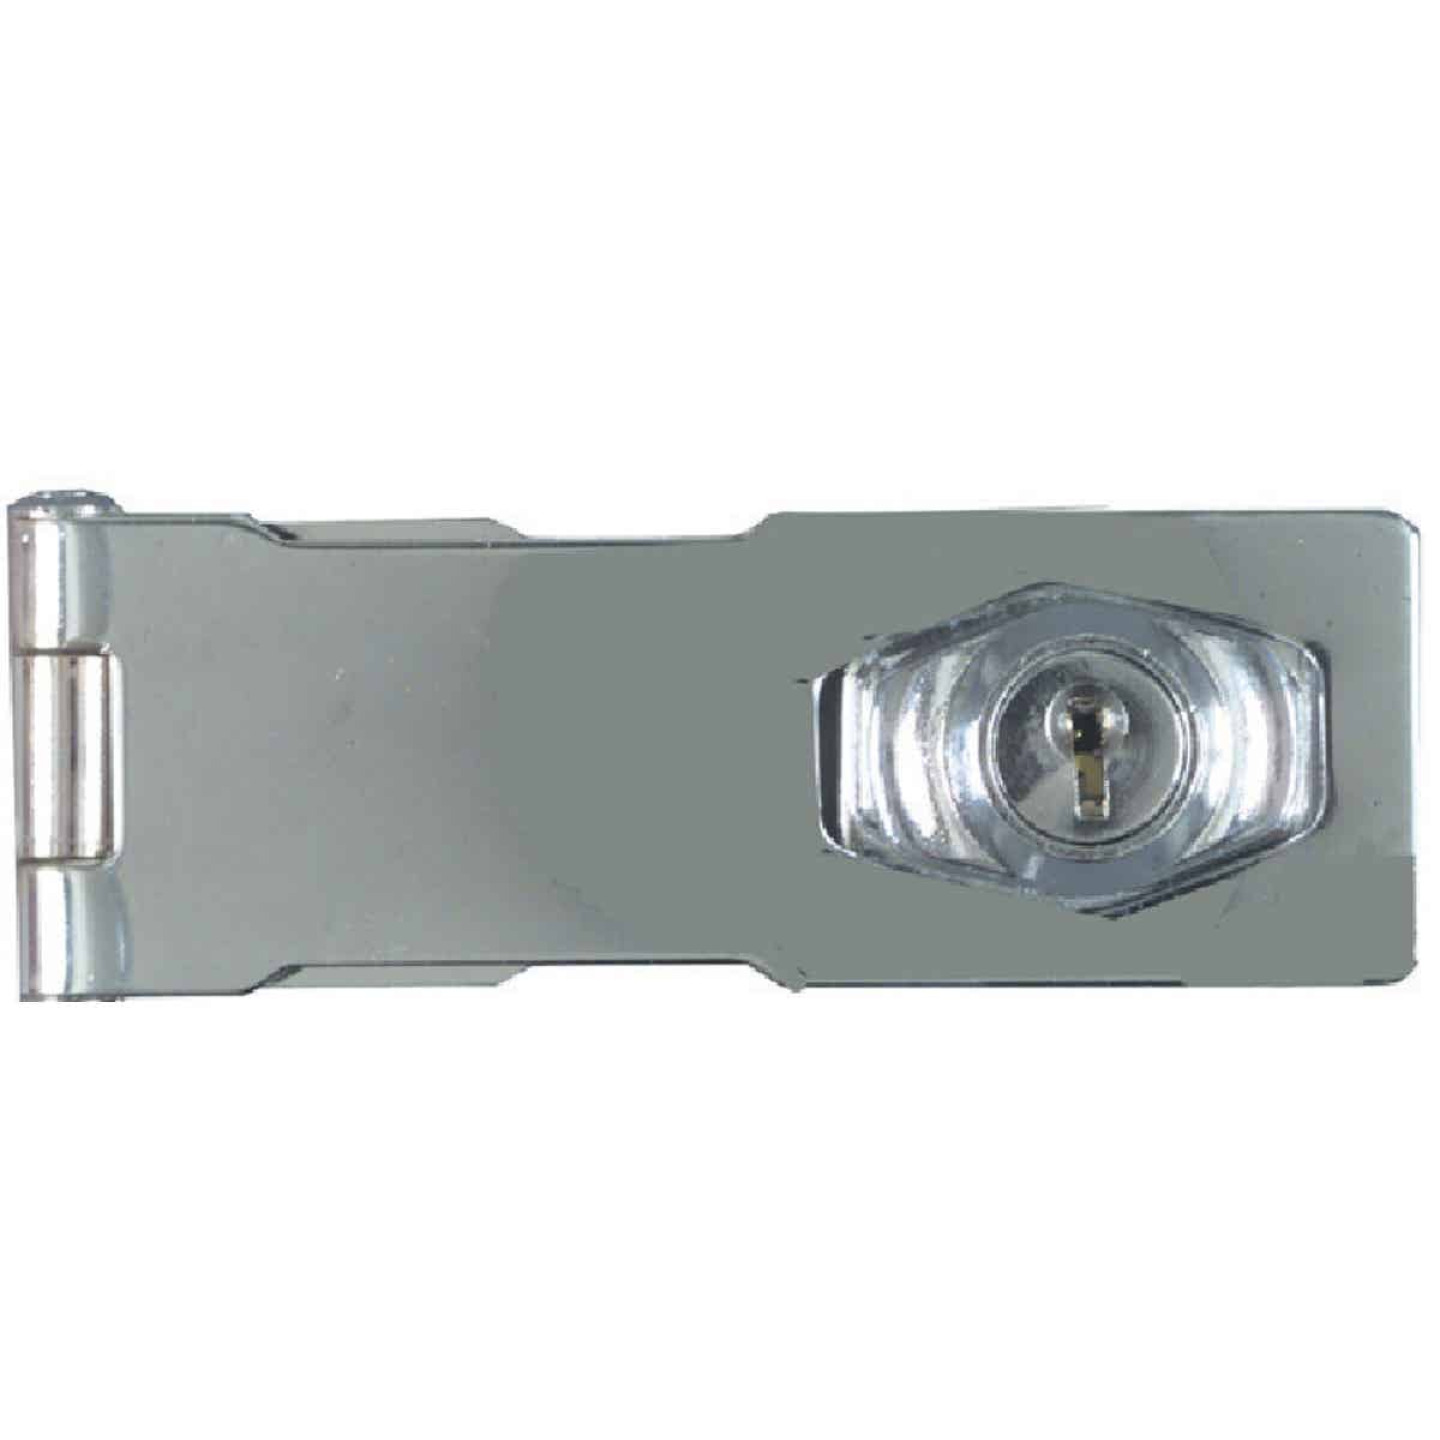 National 4-1/2 In. Keyed Different Hasp Lock Image 3